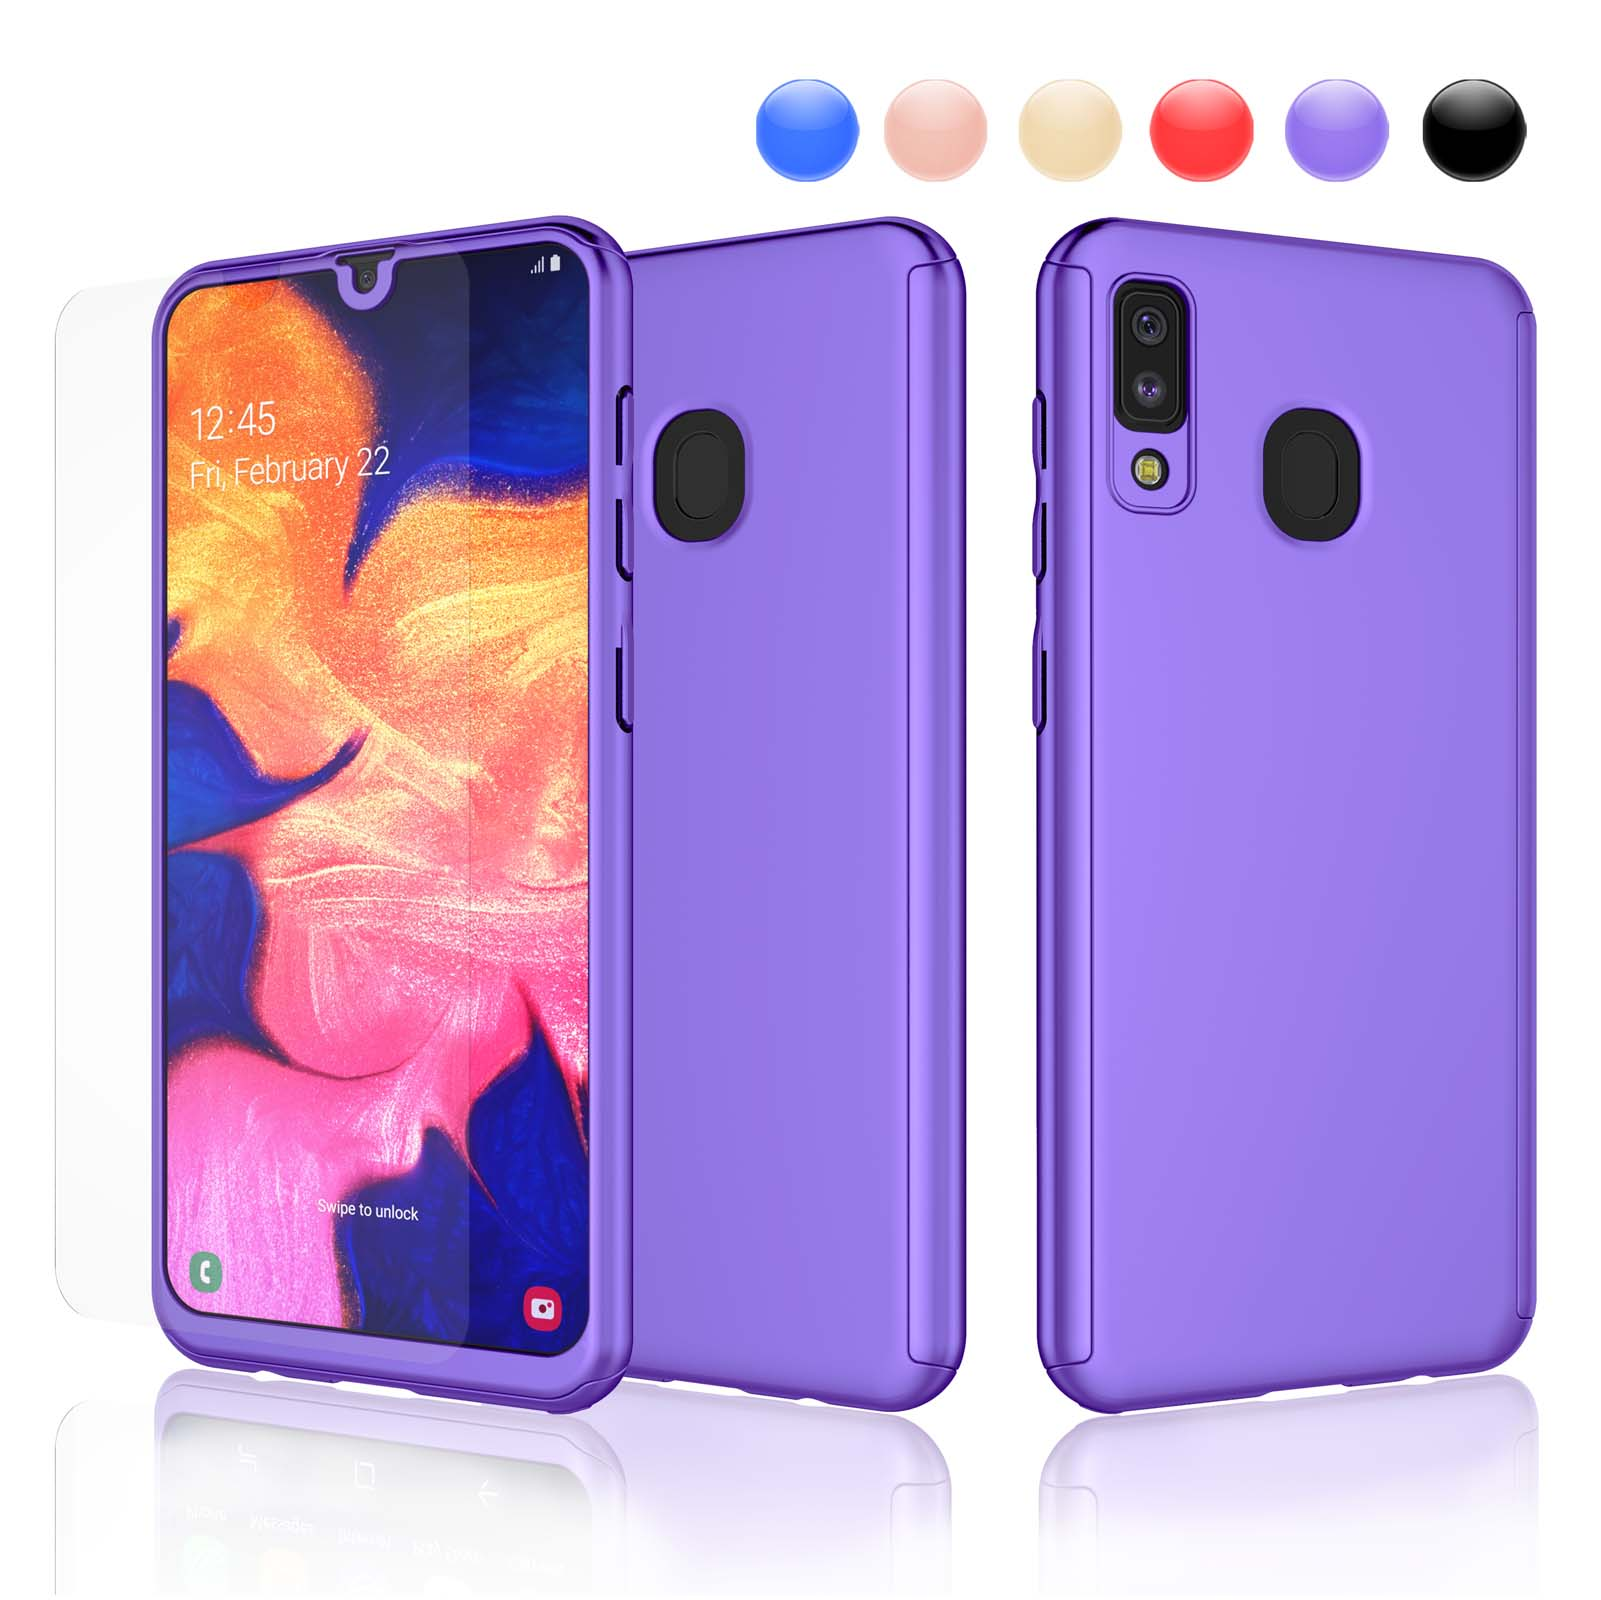 Ostop Phone Case for Samsung Galaxy A20//A30,Soft Clear TPU Silicone Case Ultra Thin Slim Lightweight Transparent Cover 360 Degree Full Body Protection for Samsung Galaxy A20//A30,Black